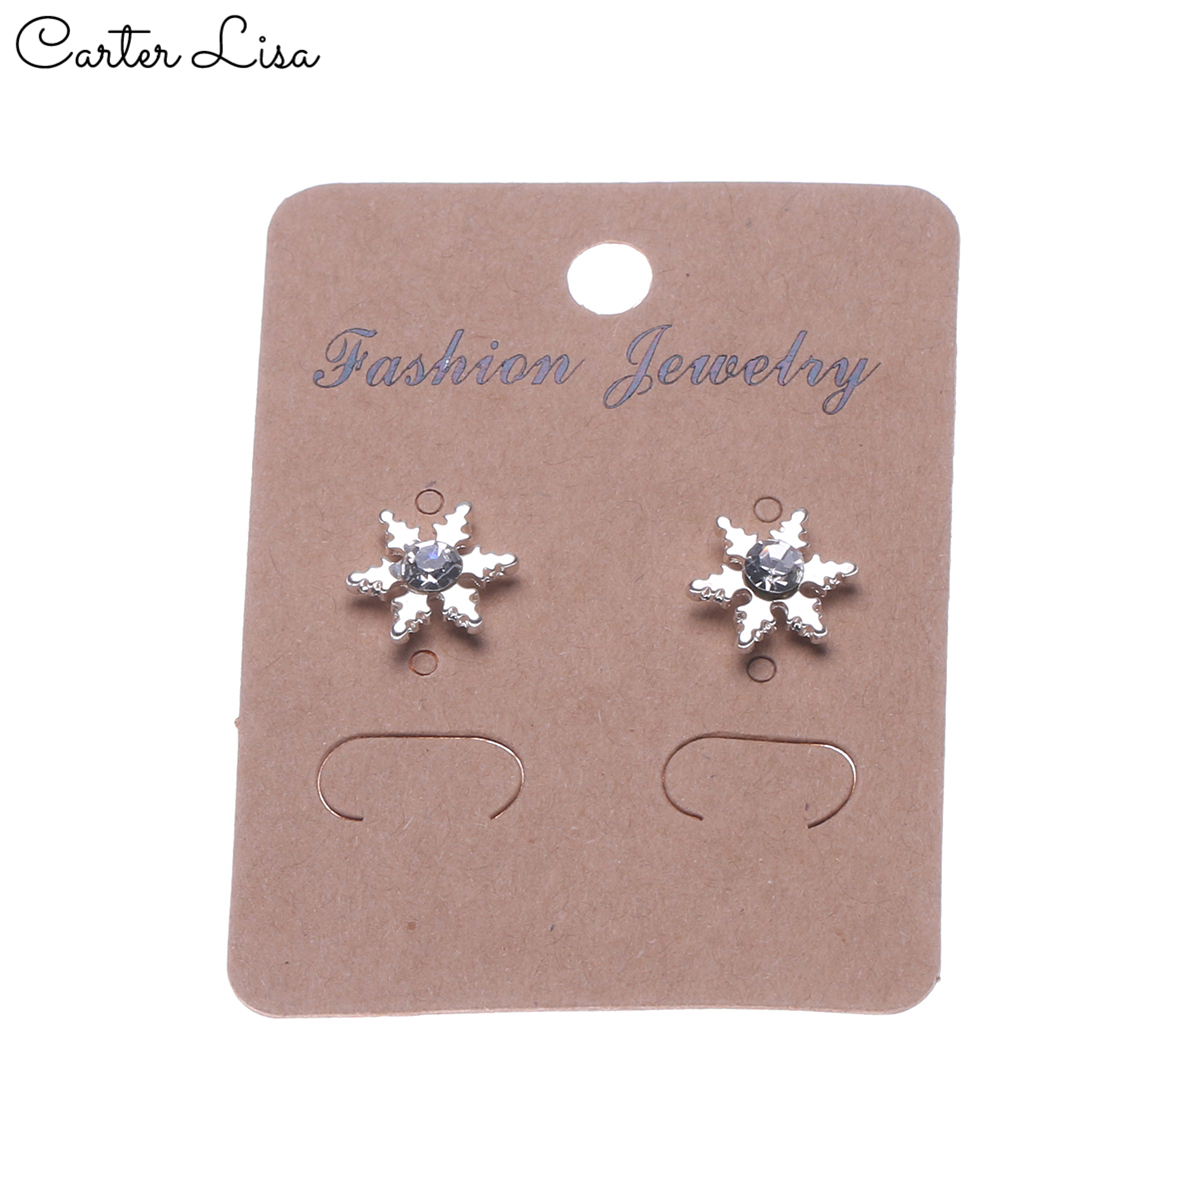 CARTER LISA HOT SALE Fashion Women's Crystal Stud Earrings Tiny Simple Crystal Earrings Party Pendientes Jewelry FREE SHIPPING